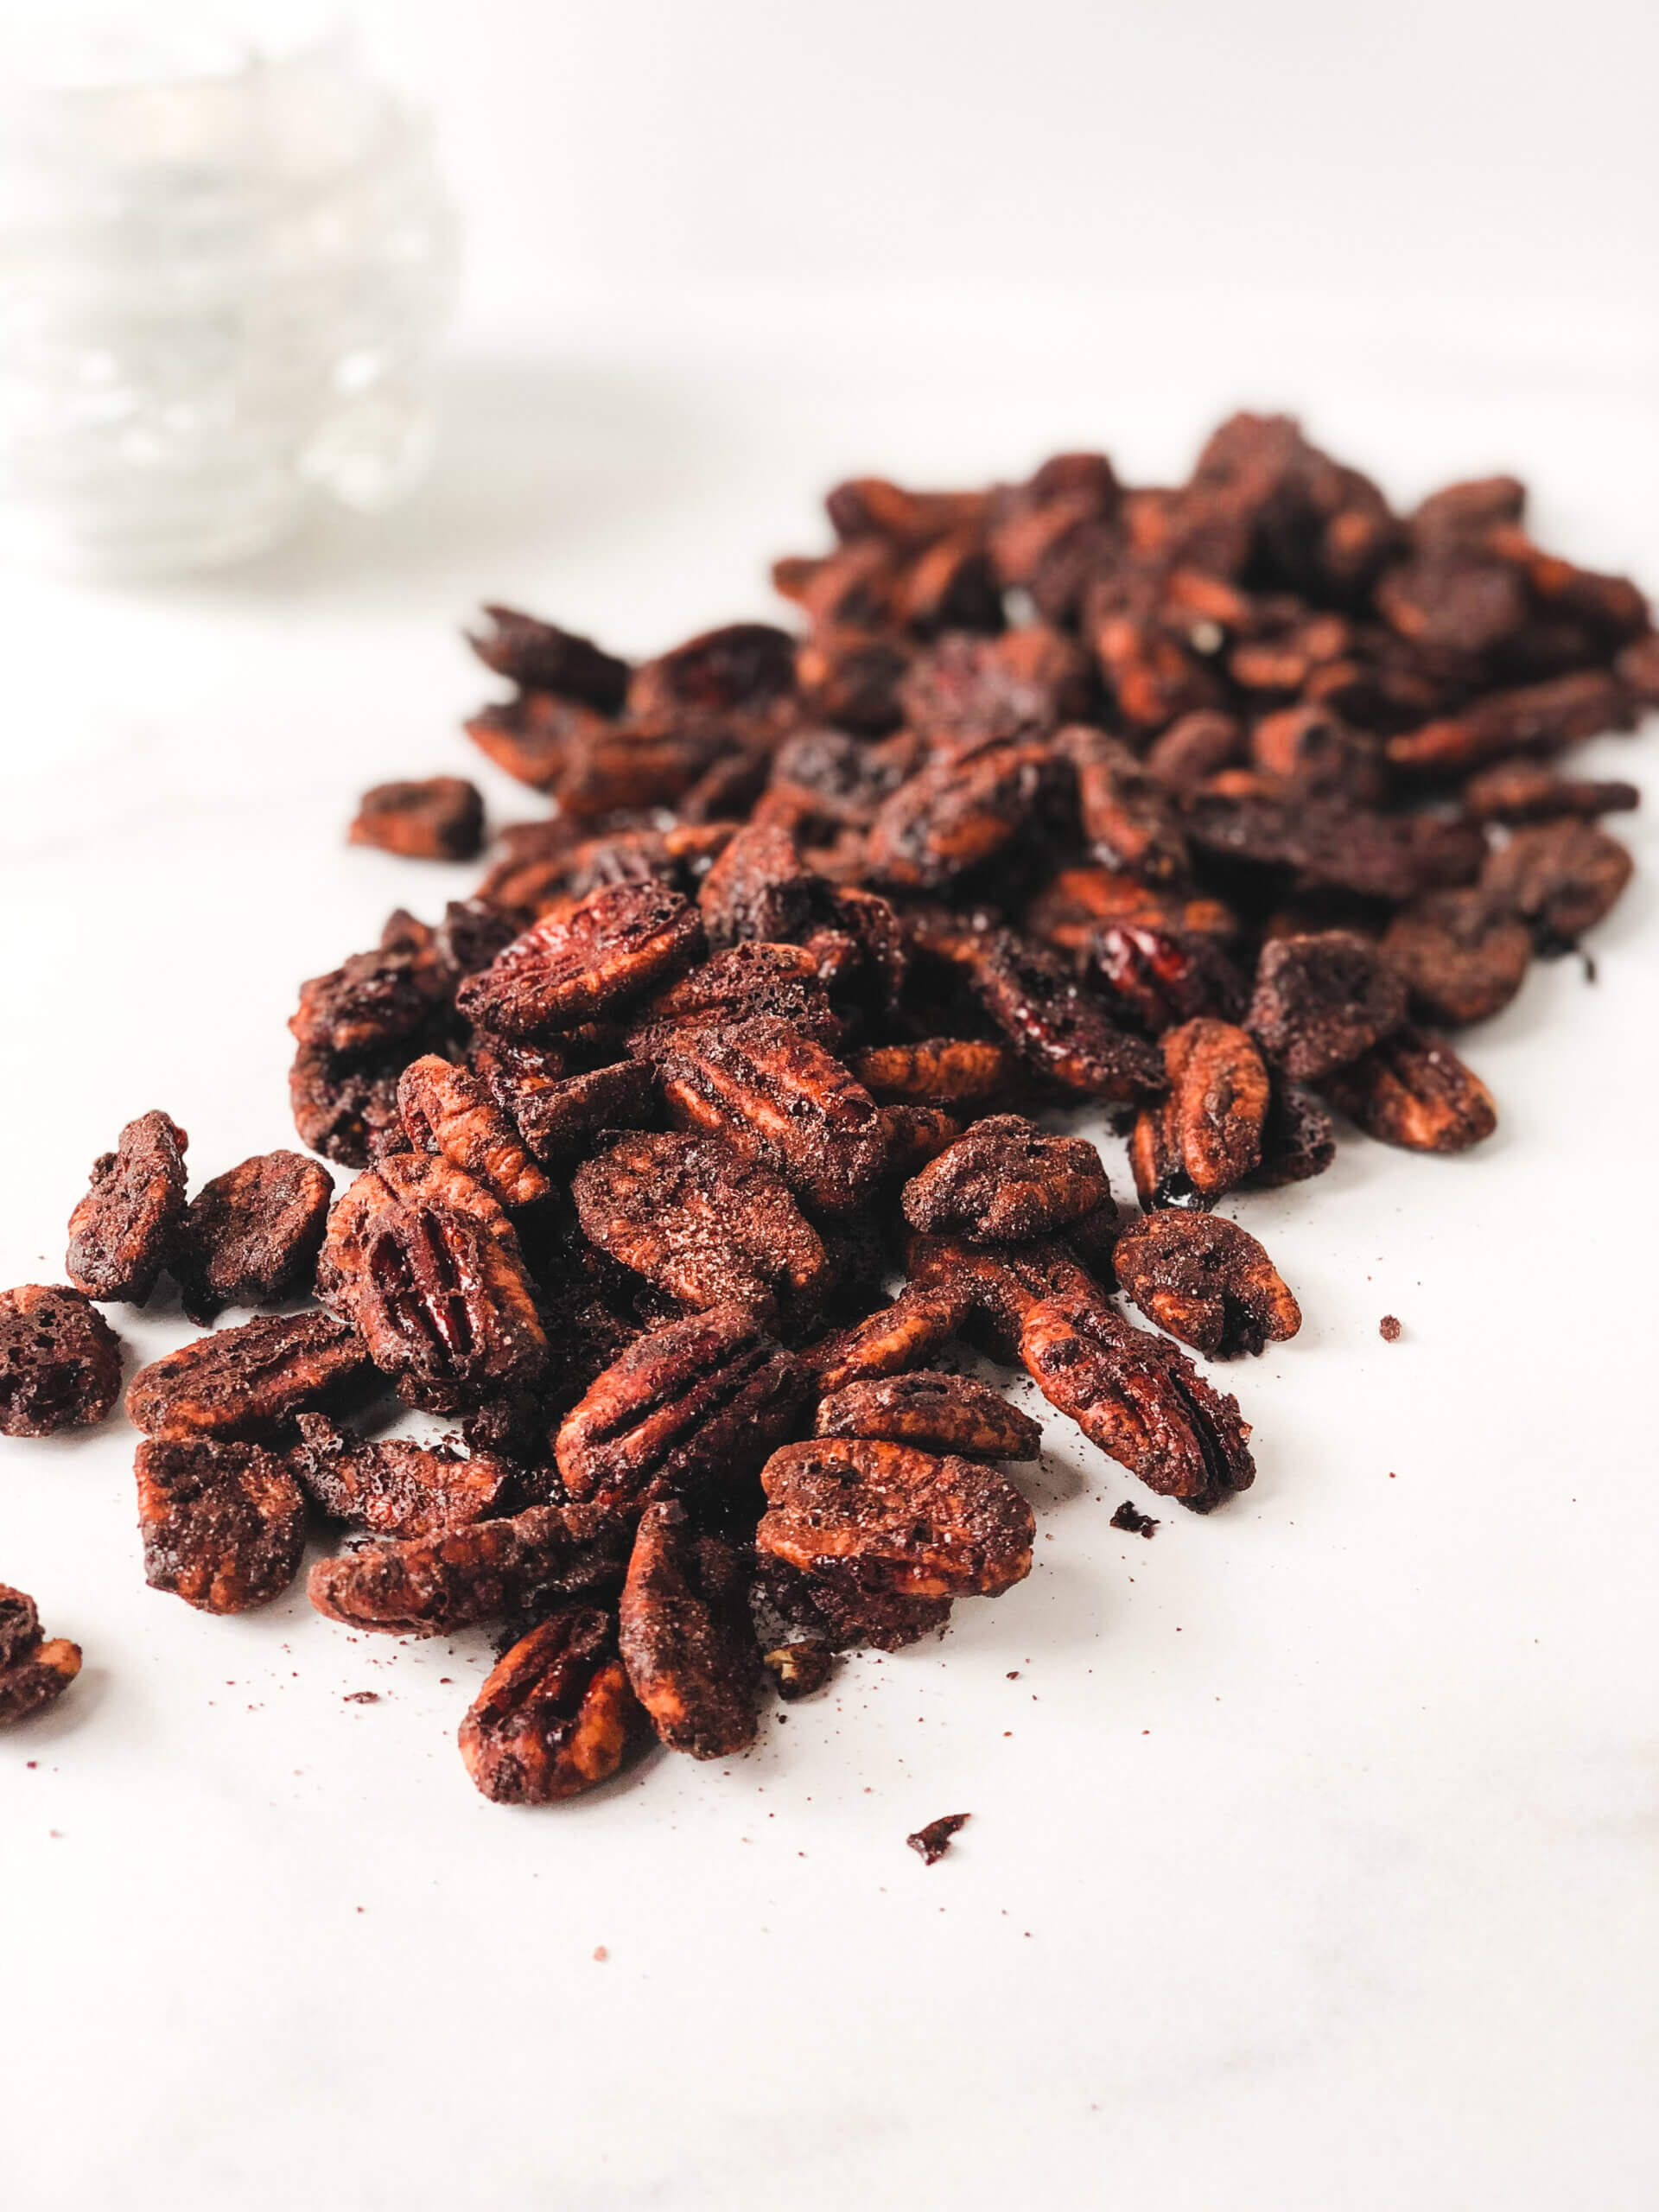 Roasted Spicy Cocoa Pecans poured over white surface in a diagonally-oriented pile. Shows how toasty and cocoa-y they are